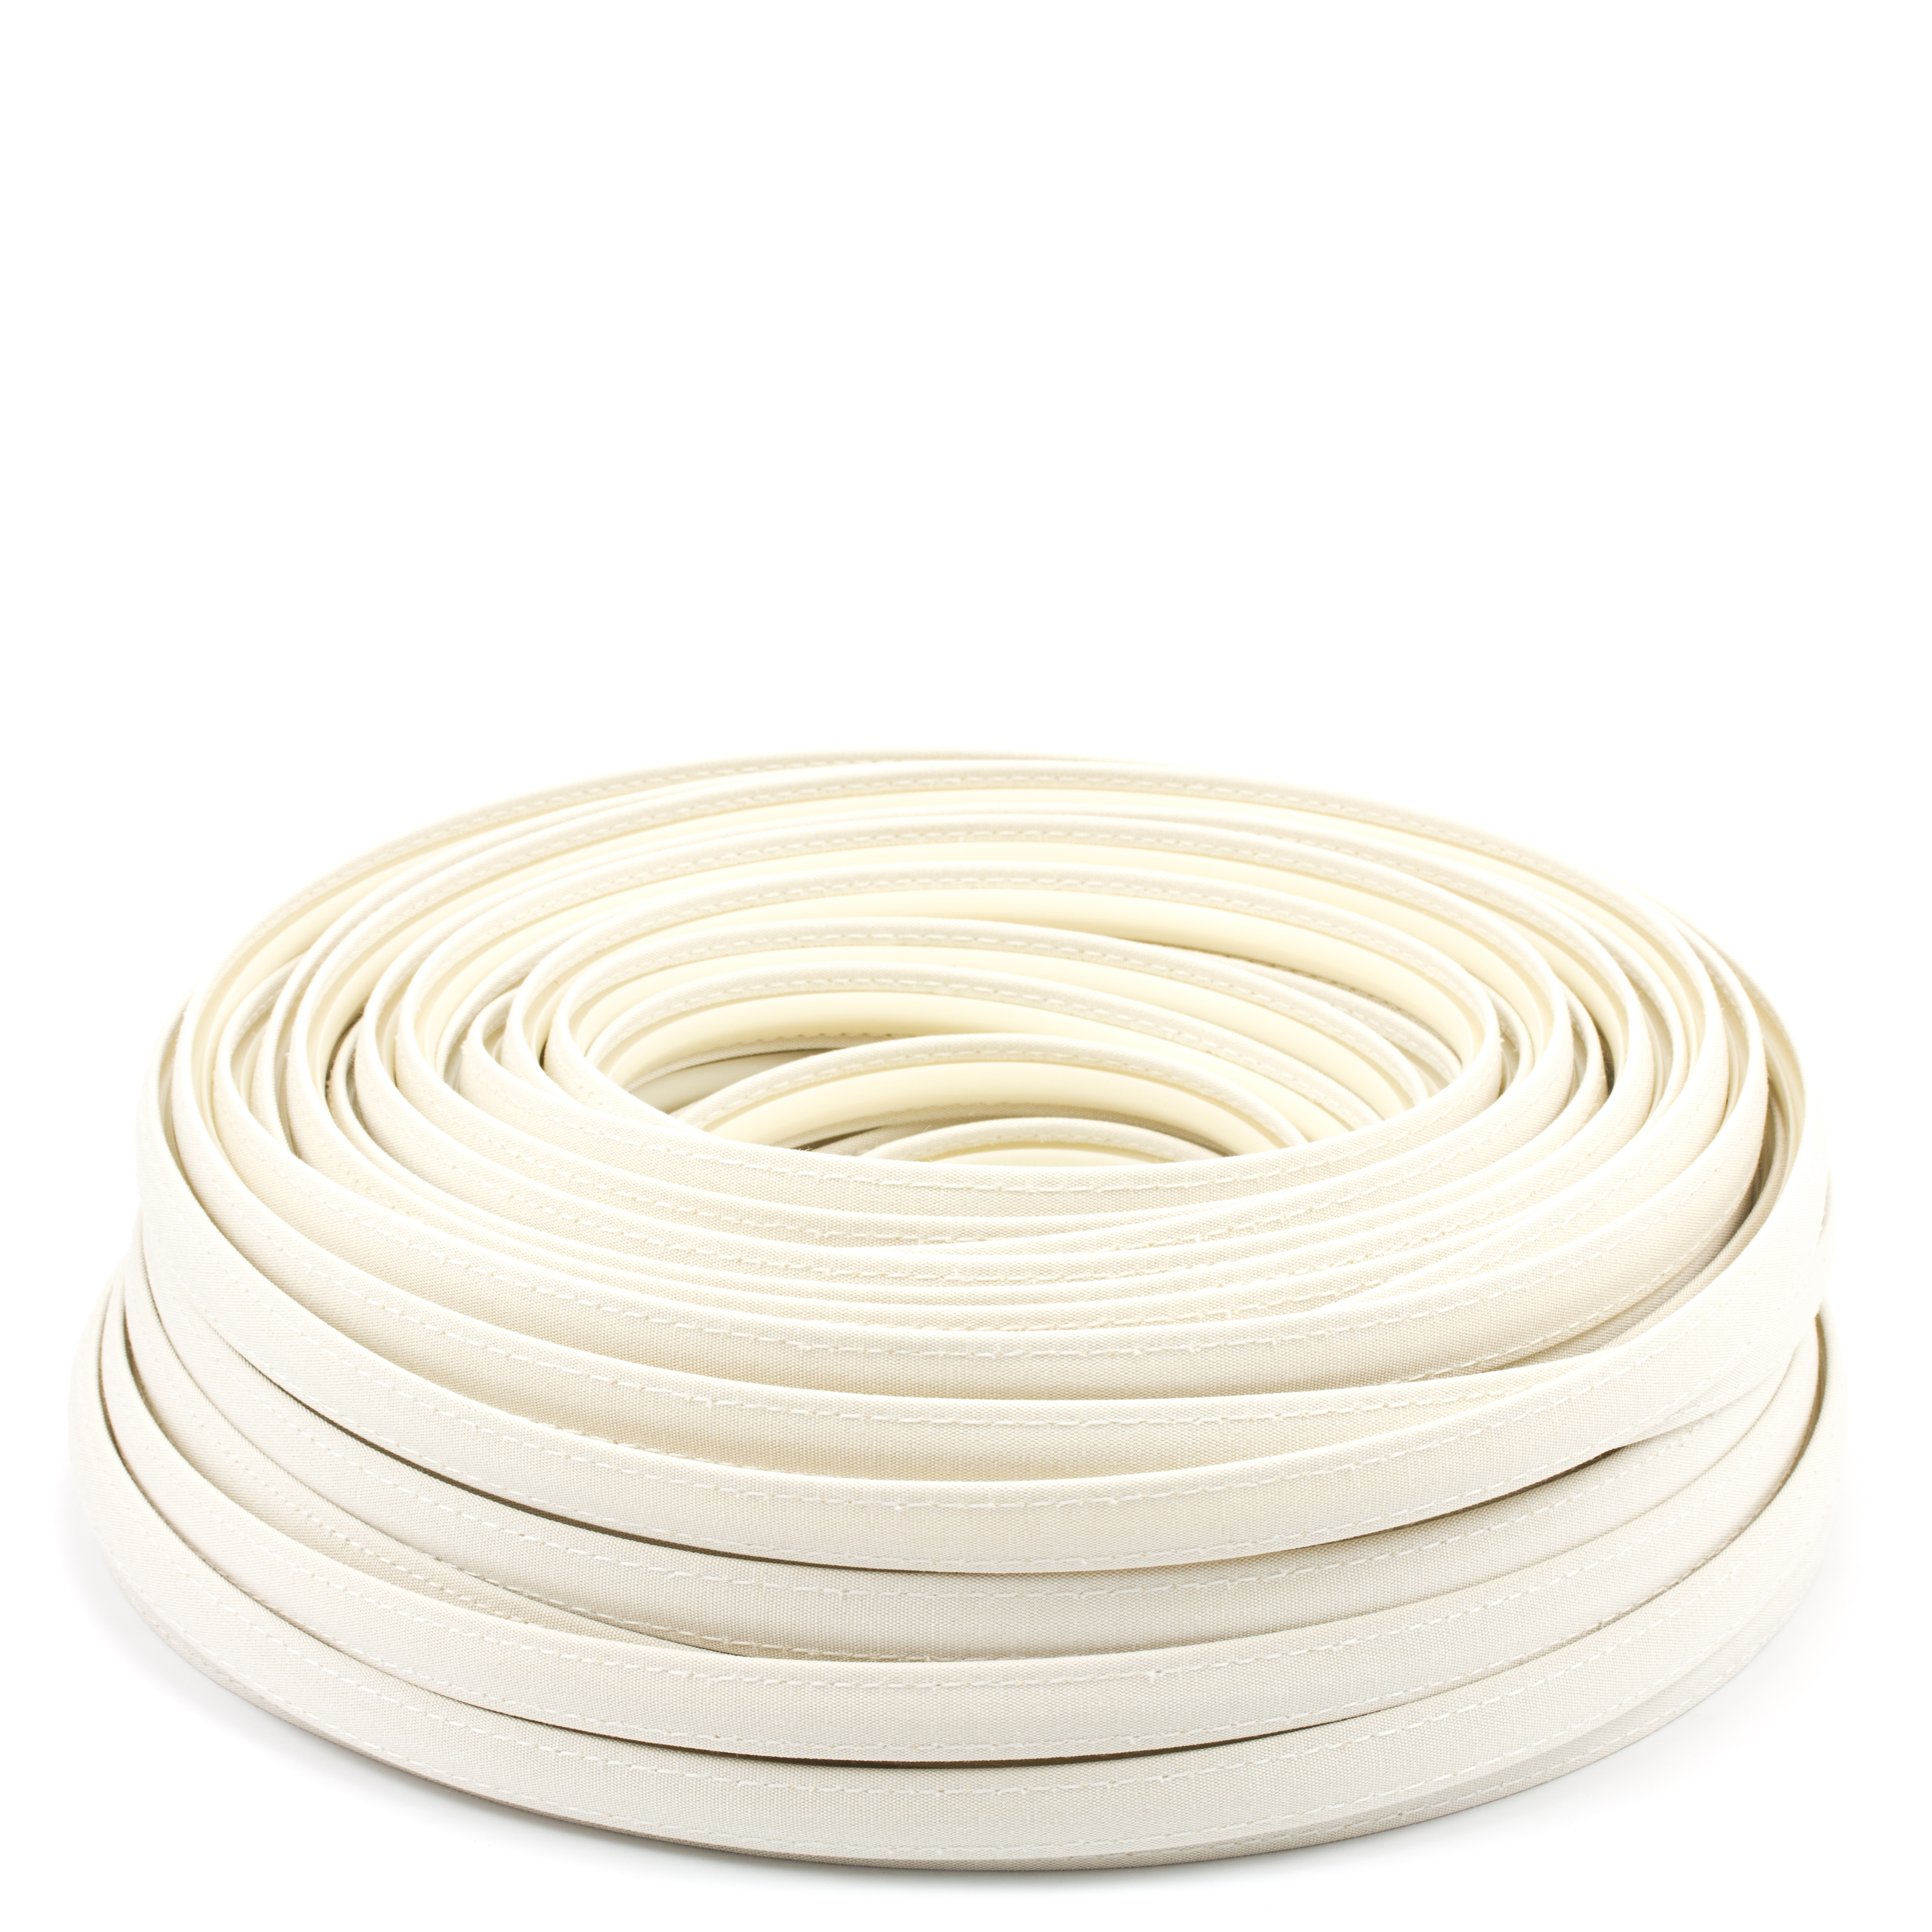 Steel Stitch Sunbrella Covered ZipStrip #6042 Oyster 160' Full Rolls Only